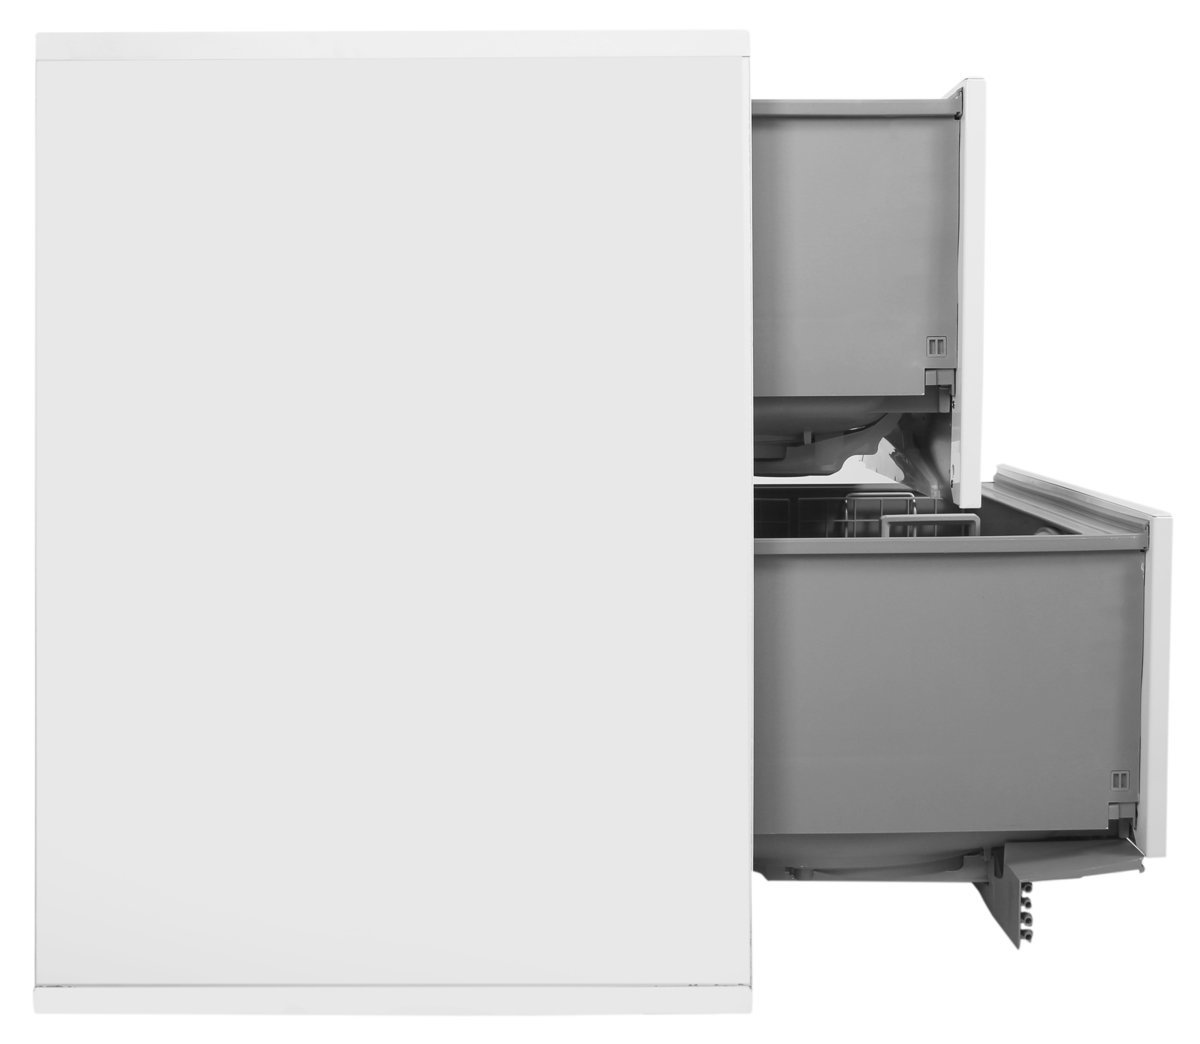 Fisher and paykel 2 drawer dishwasher - Larger 2